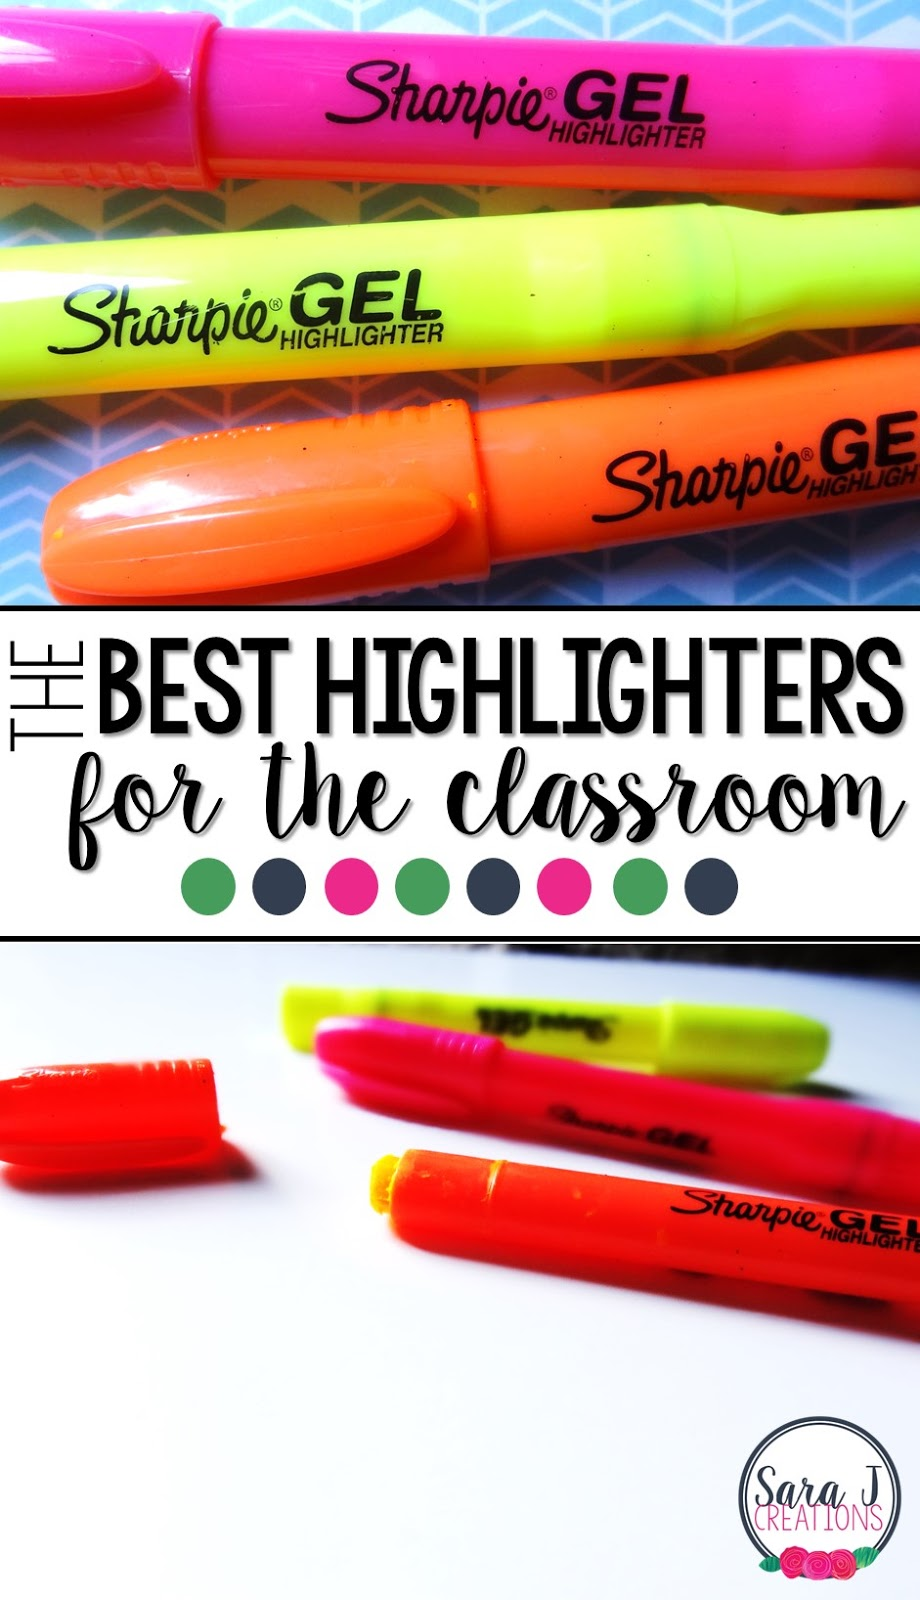 The best school supply for the classroom!  These highlighters are amazing!